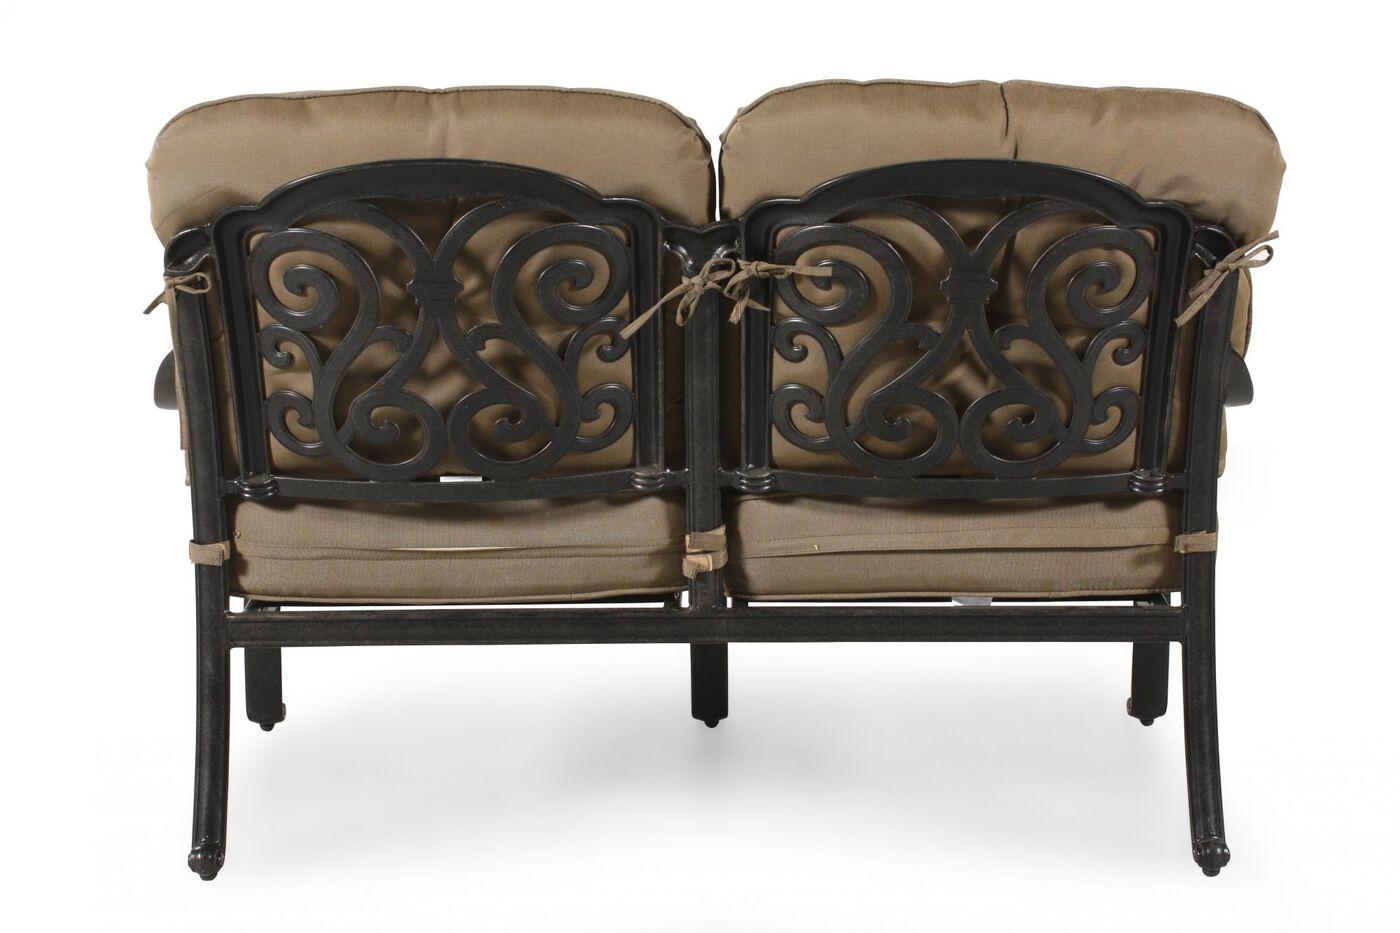 ... World Source St. Louis Loveseat with Cushion ... - World Source St. Louis Loveseat With Cushion Mathis Brothers